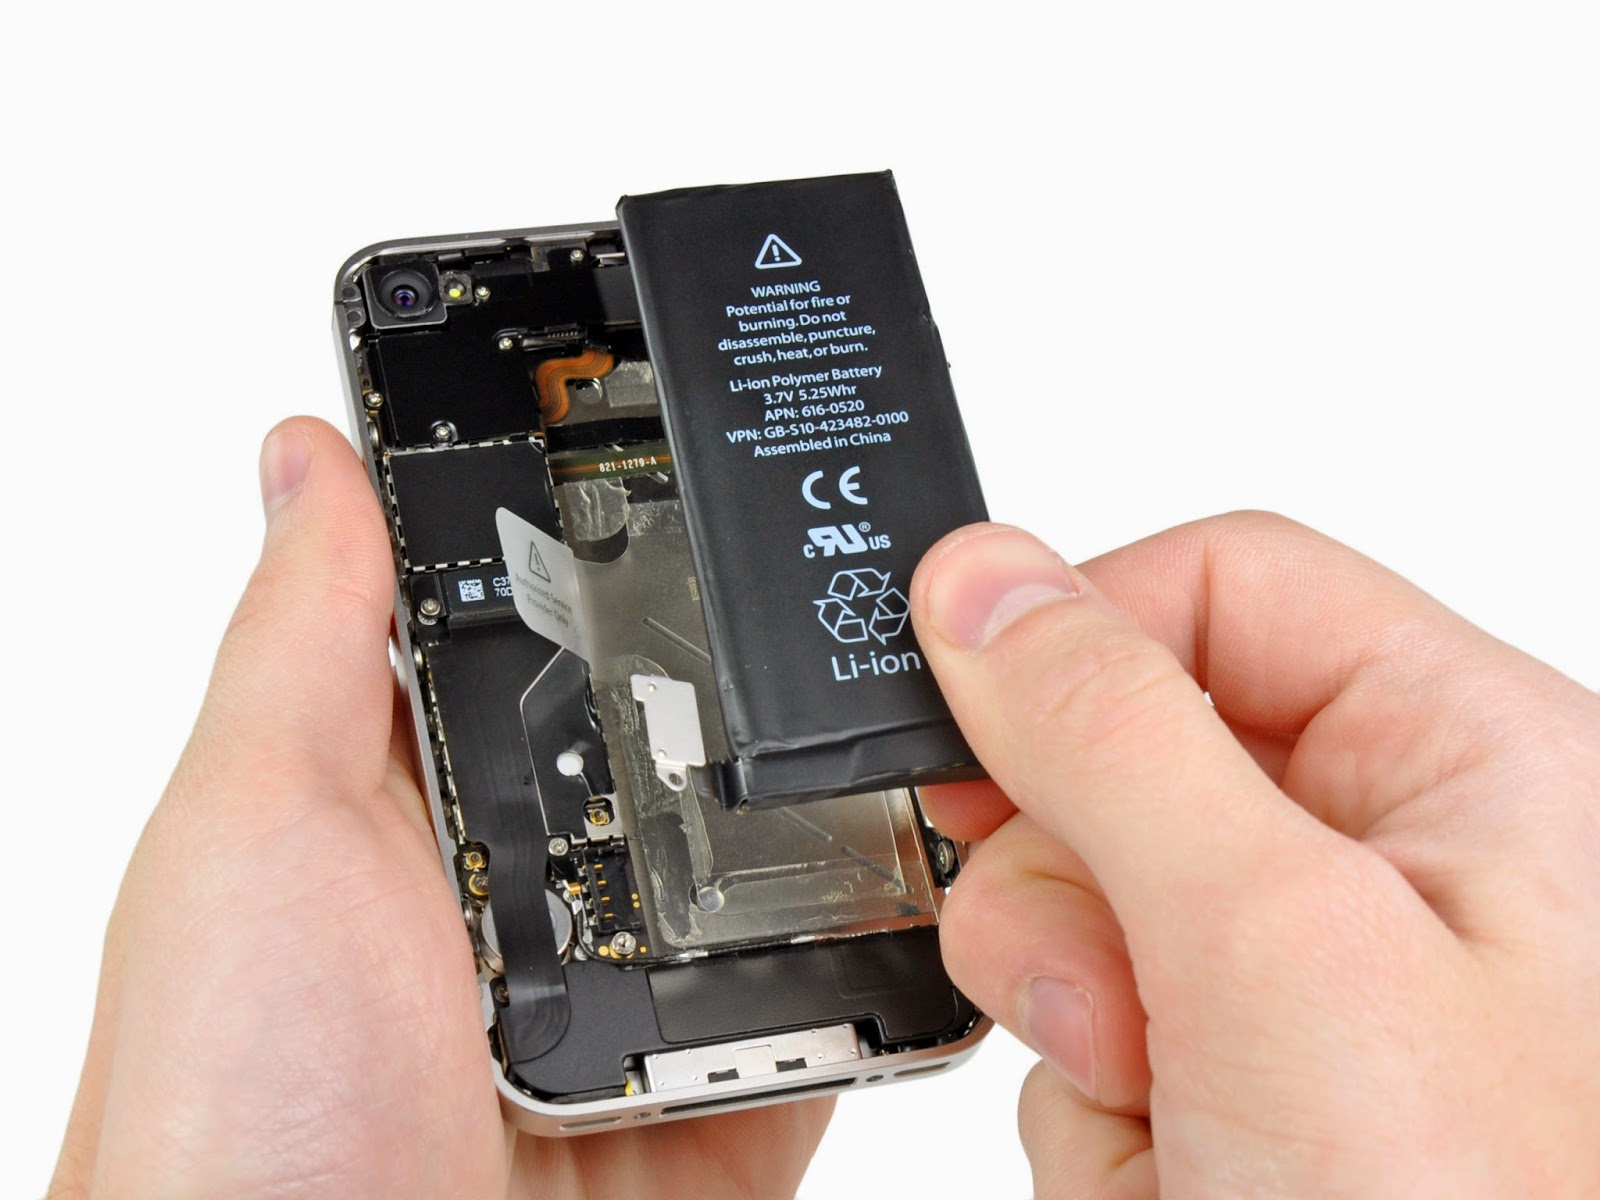 Apple,Apple iPhone 5,iPhone,iPhone 5,Mobiles,iphone 5 battery replacement, battery replacement for iphone 5